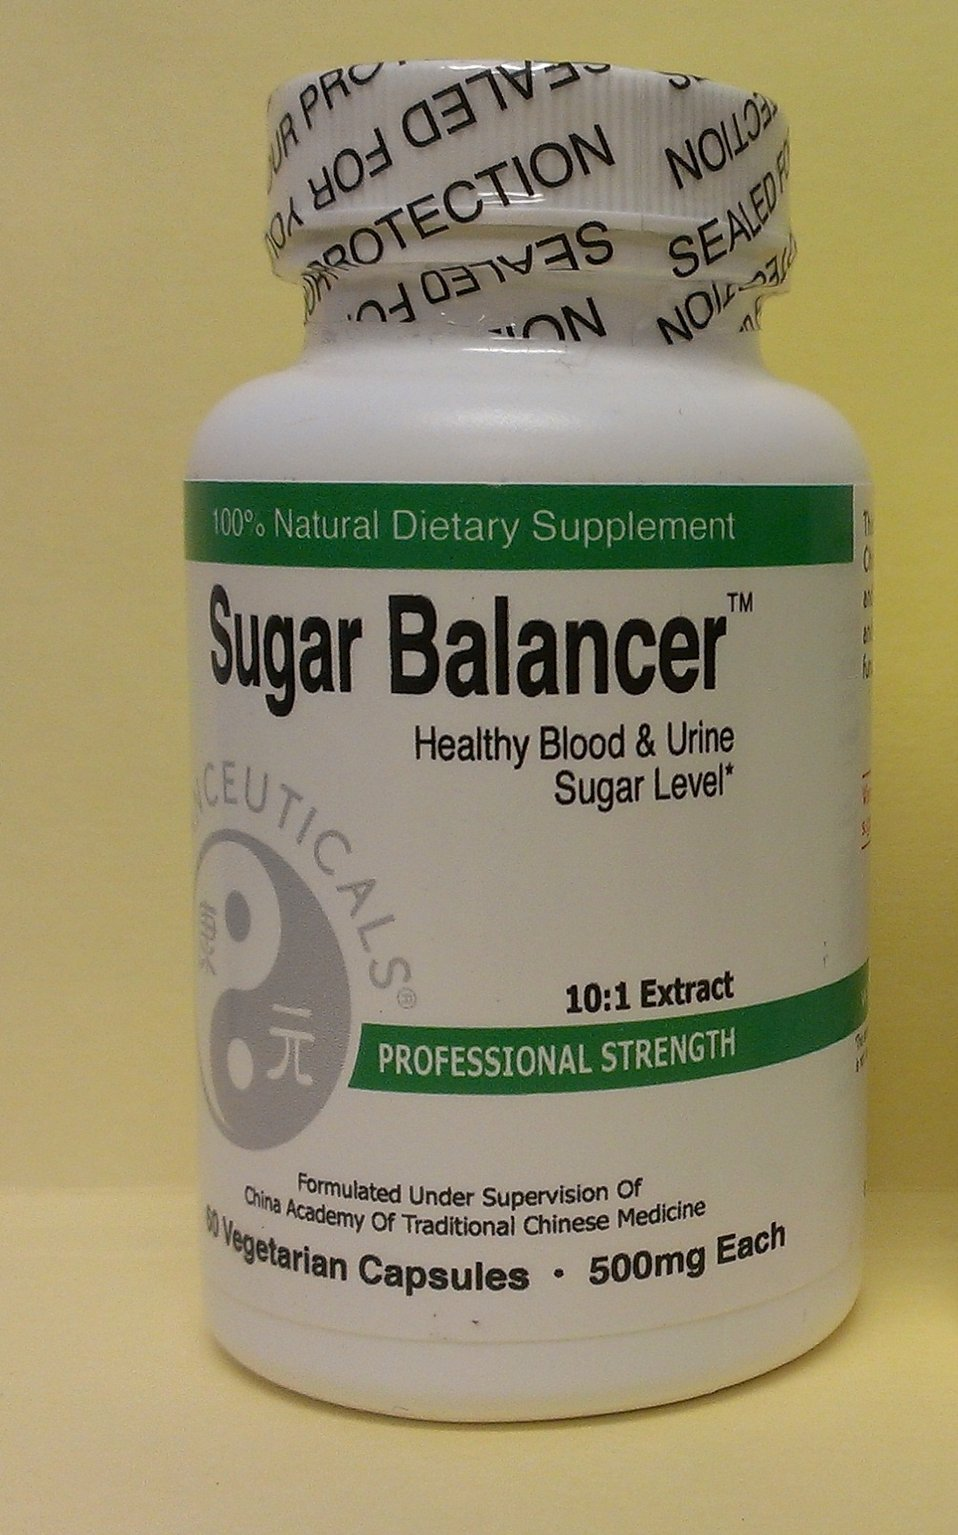 Illegally Sold Diabetes Treatments - Sugar Balancer